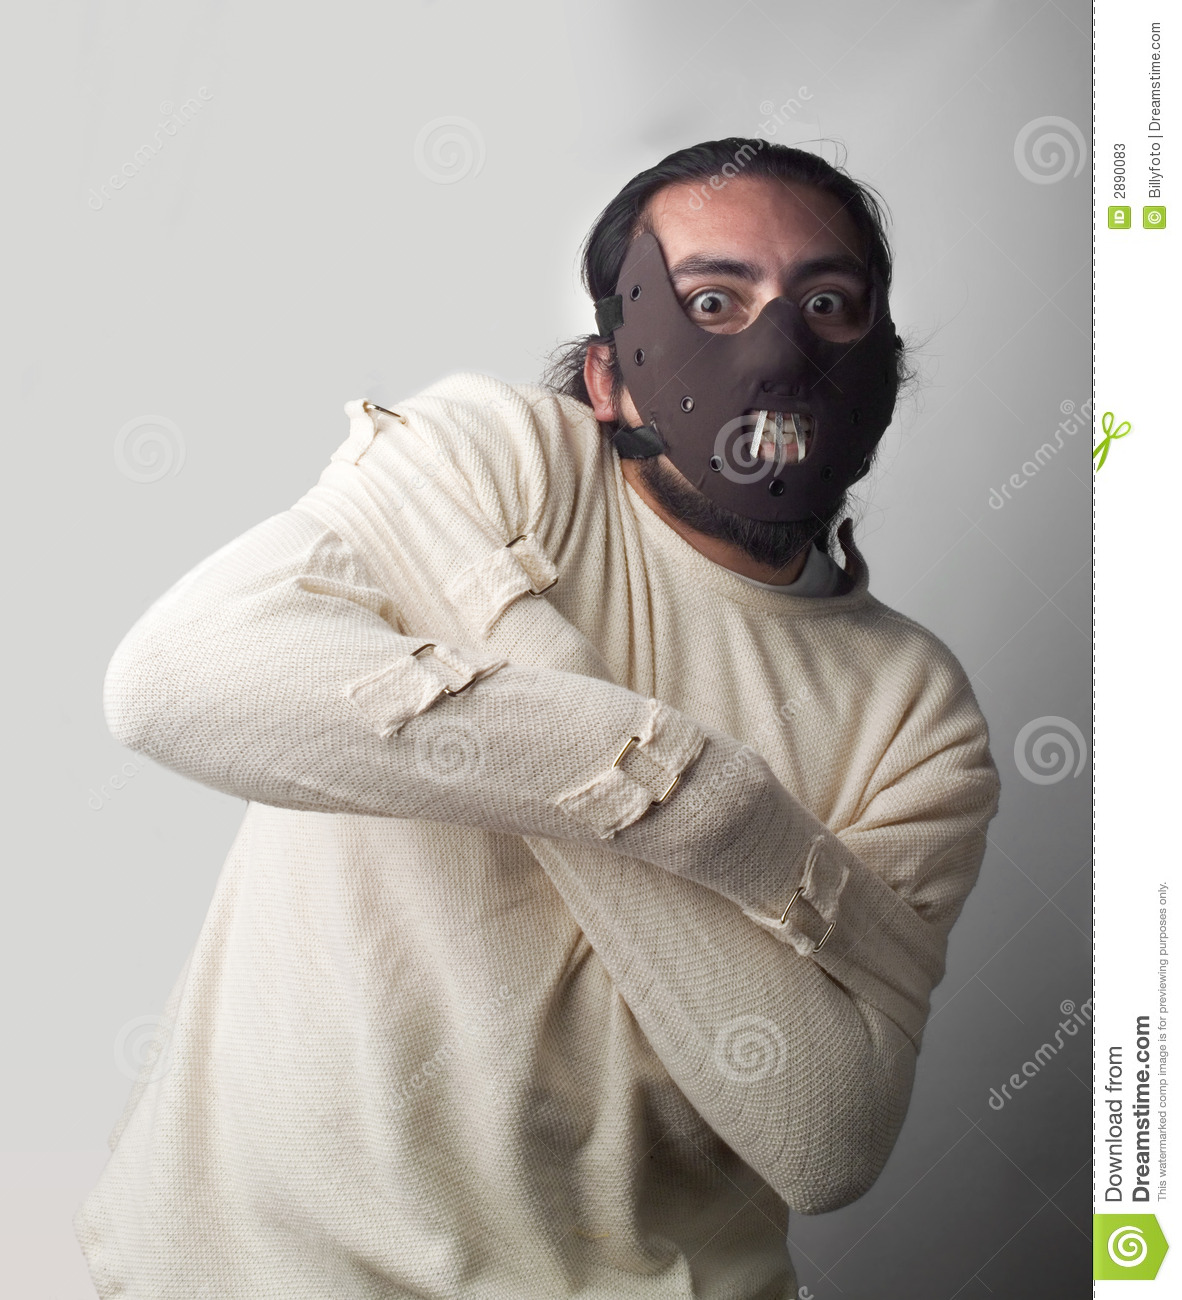 Man strapped up in a strait jacket with mask on his face.